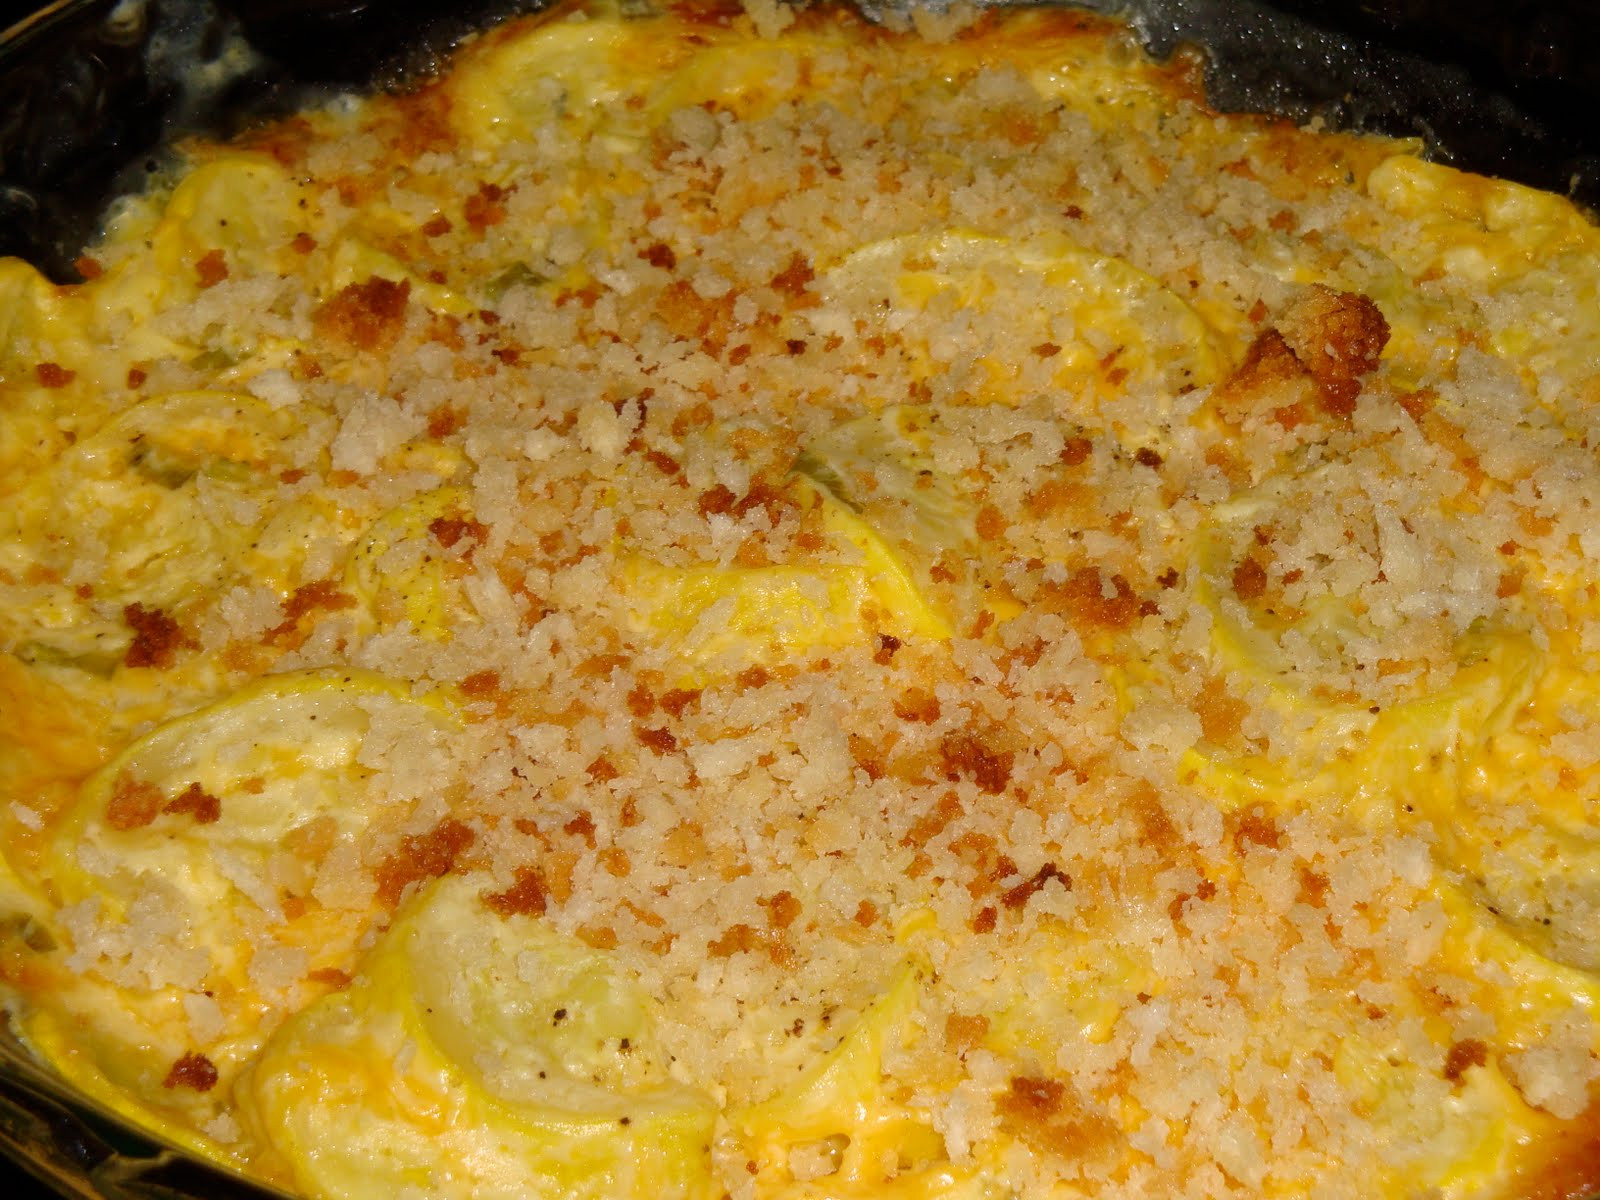 Yellow Squash Casserole Recipes  simply made with love Summer Squash Casserole